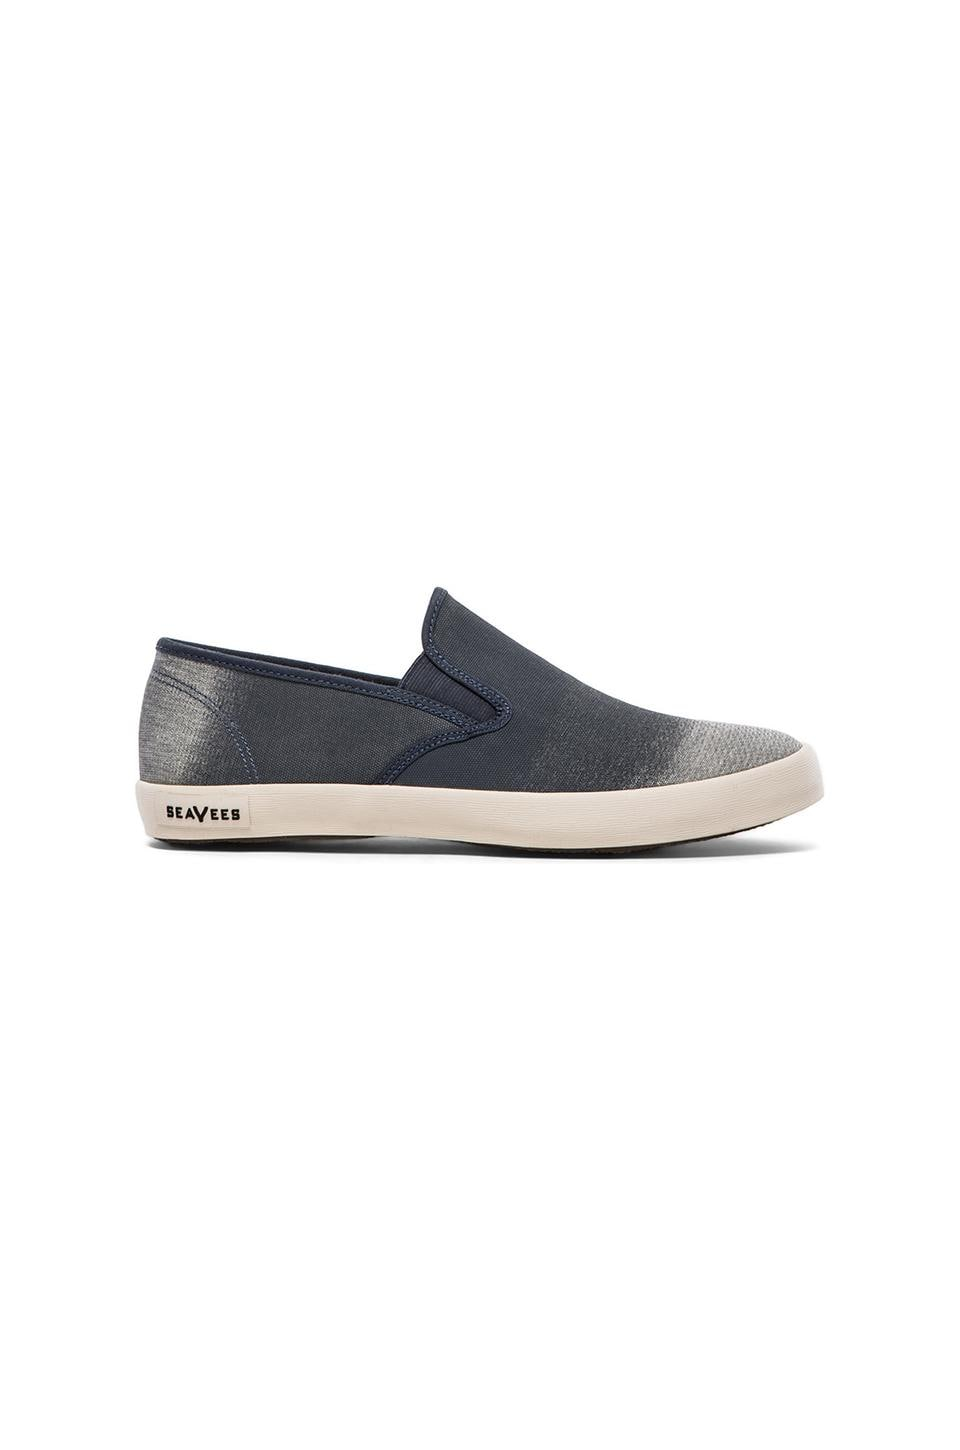 SeaVees 02/64 Baja Slip On Dip Dye in Shadow Blue